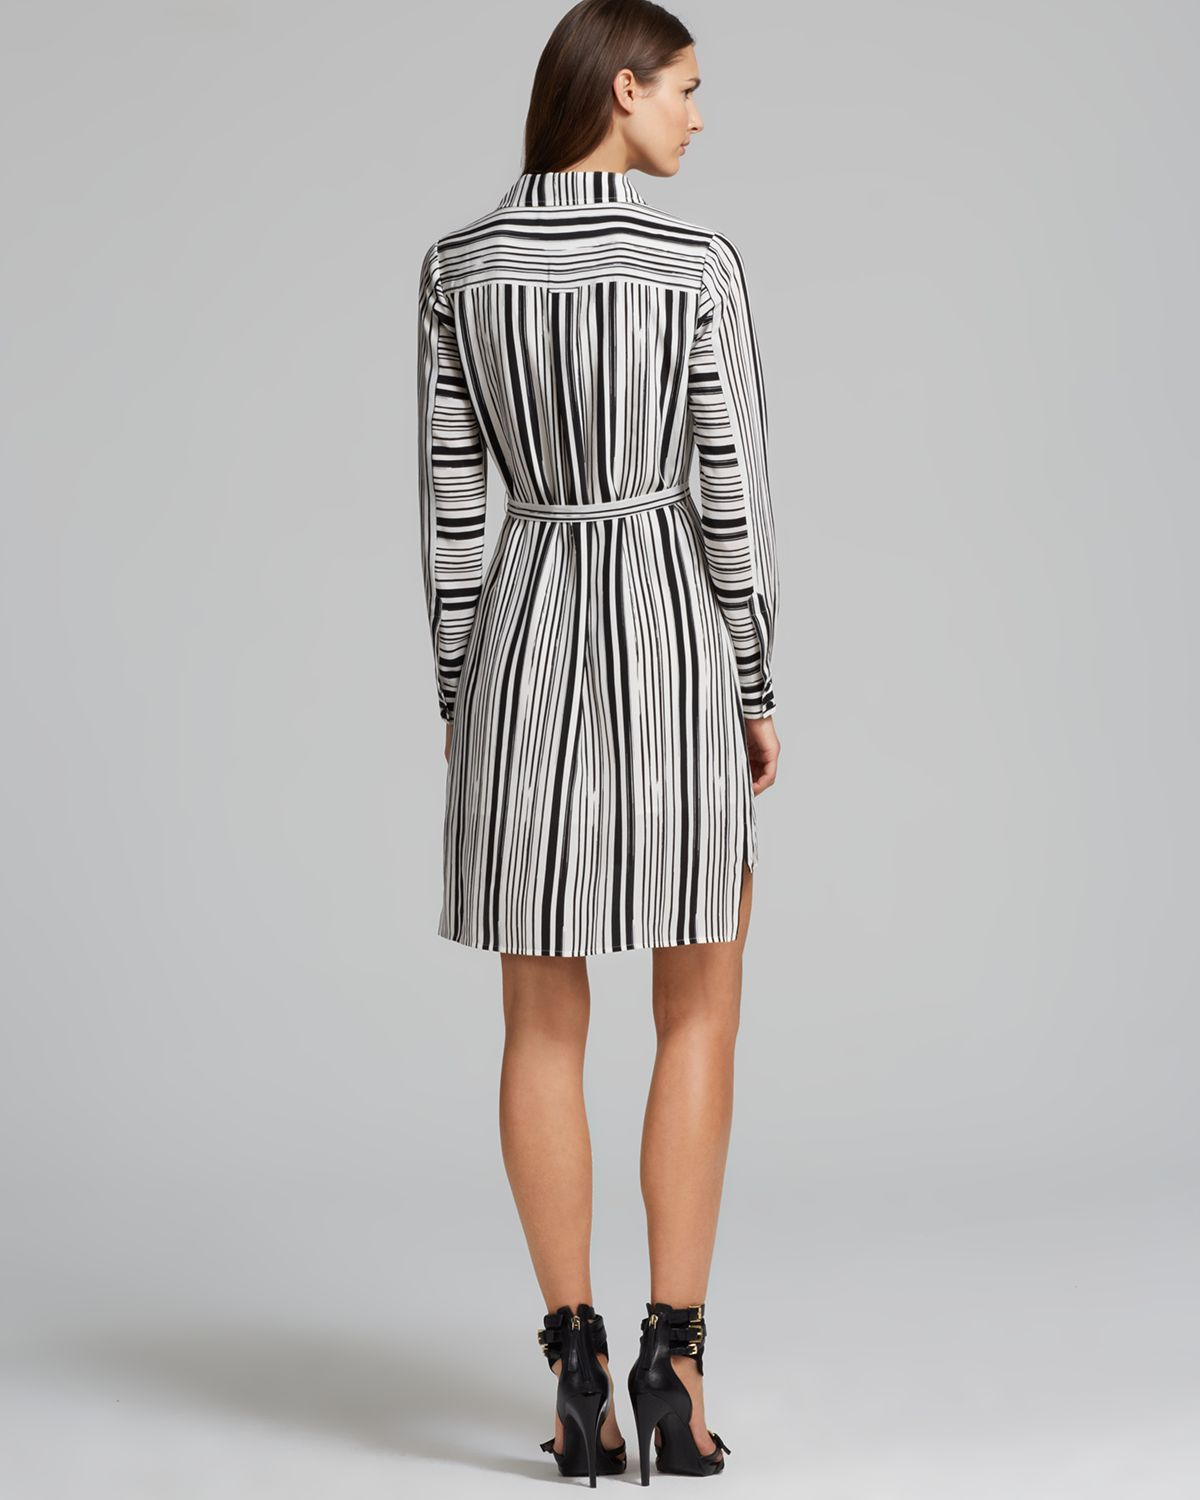 Black And White Long Shirt Dress - BCD Tofu House 4c753b0f9